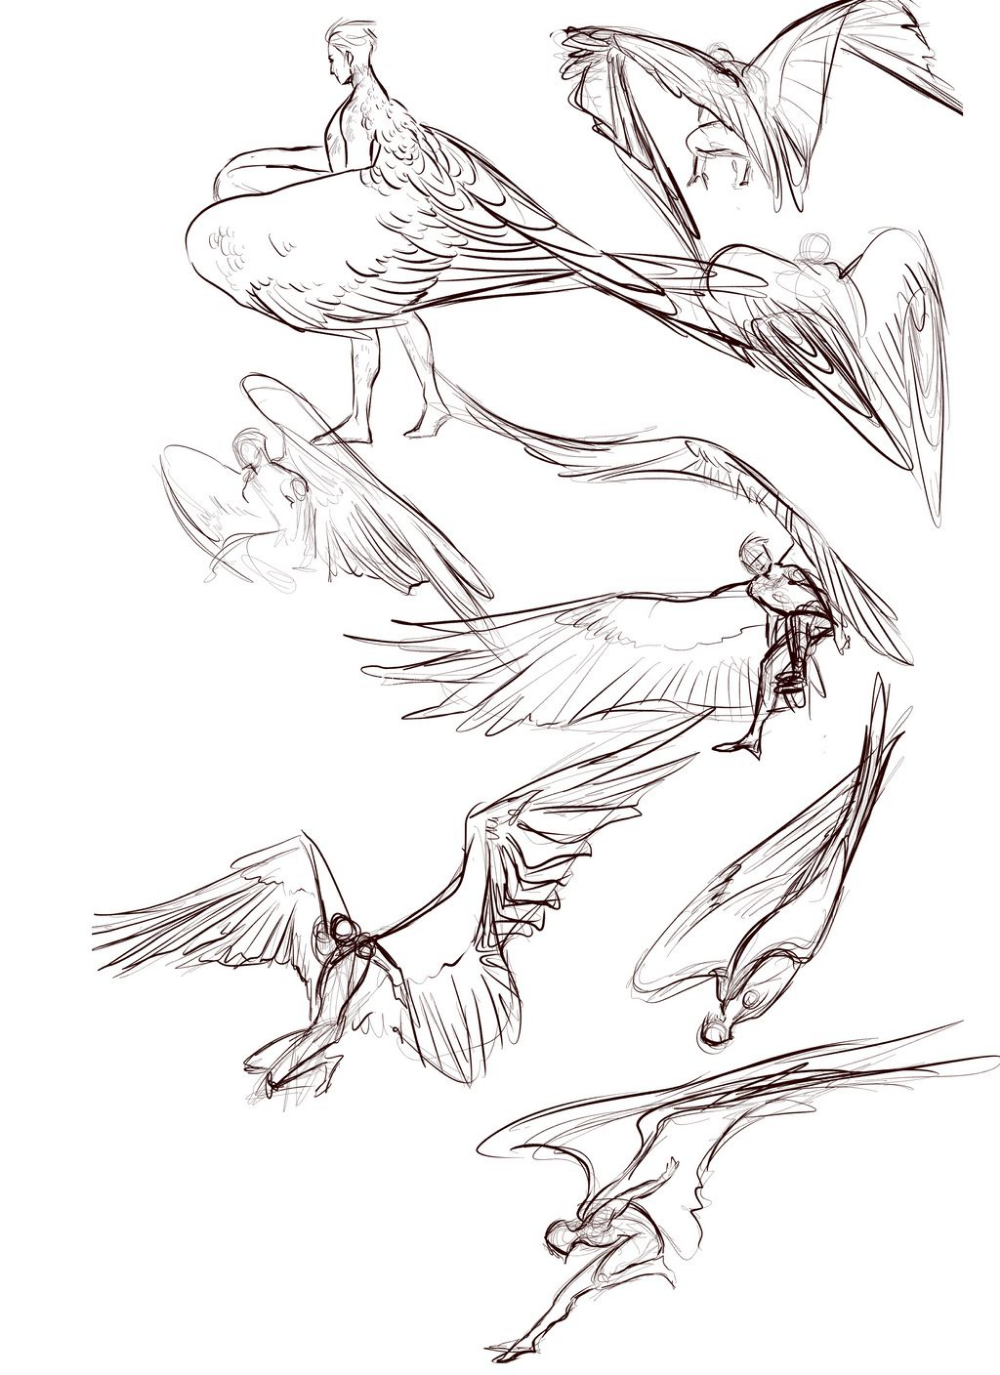 Wingy Doodles By Nebluus On Deviantart In 2020 Art Reference Photos Wings Drawing Wings Art